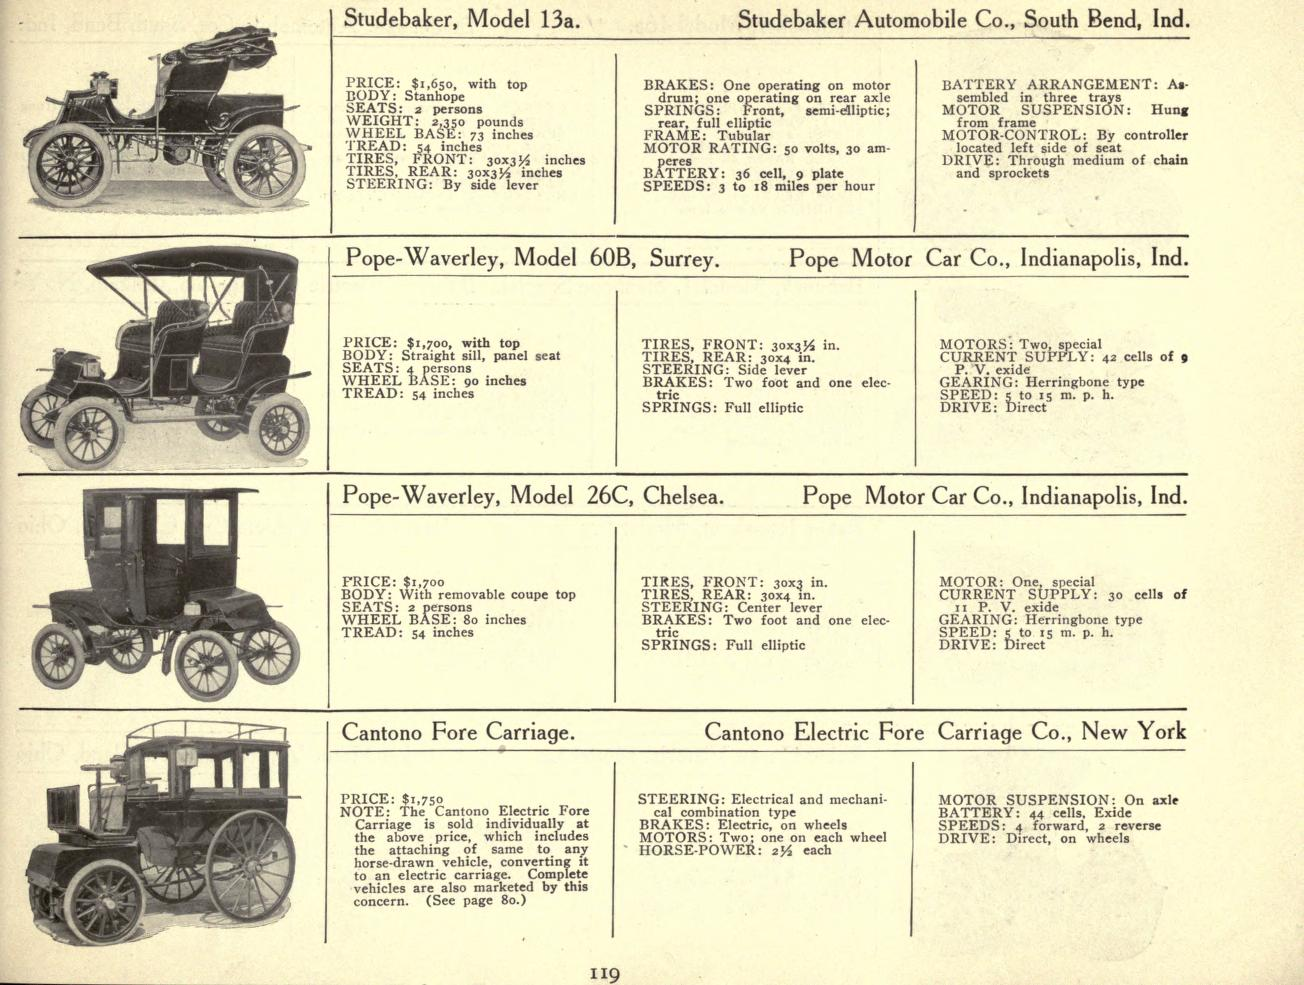 motor dating from 1925 Triumph dating information engine frame numbers to enable you to purchase the correct parts for your machine you will need to know the part reference numbers.